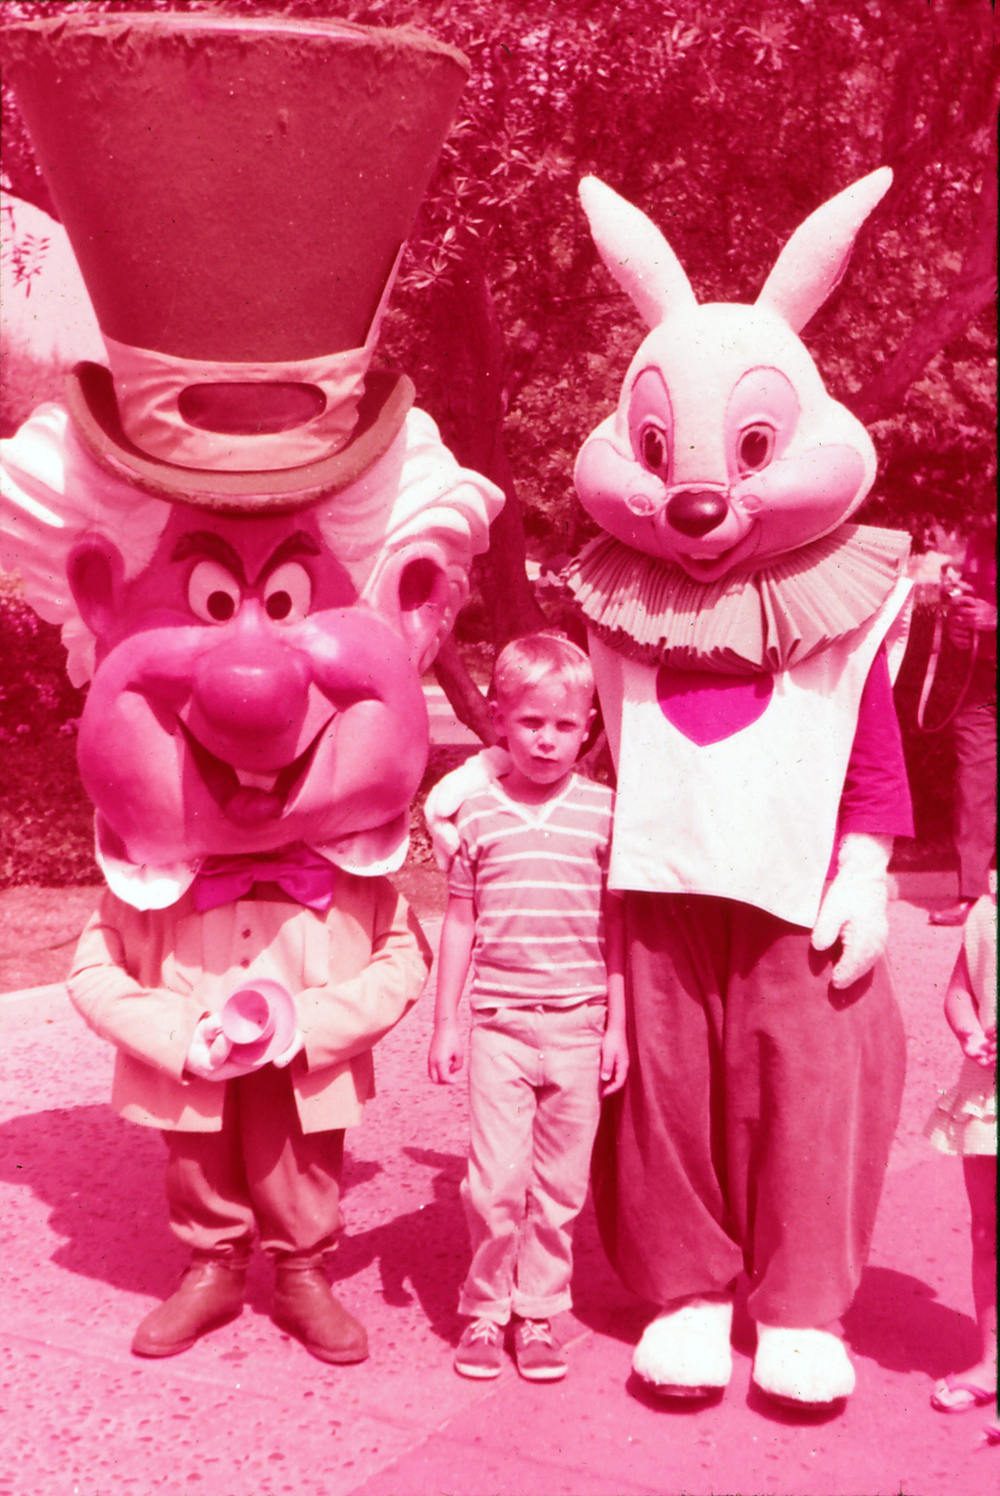 The Mad Hatter and the White Rabbit at the World's Fair, 1964.